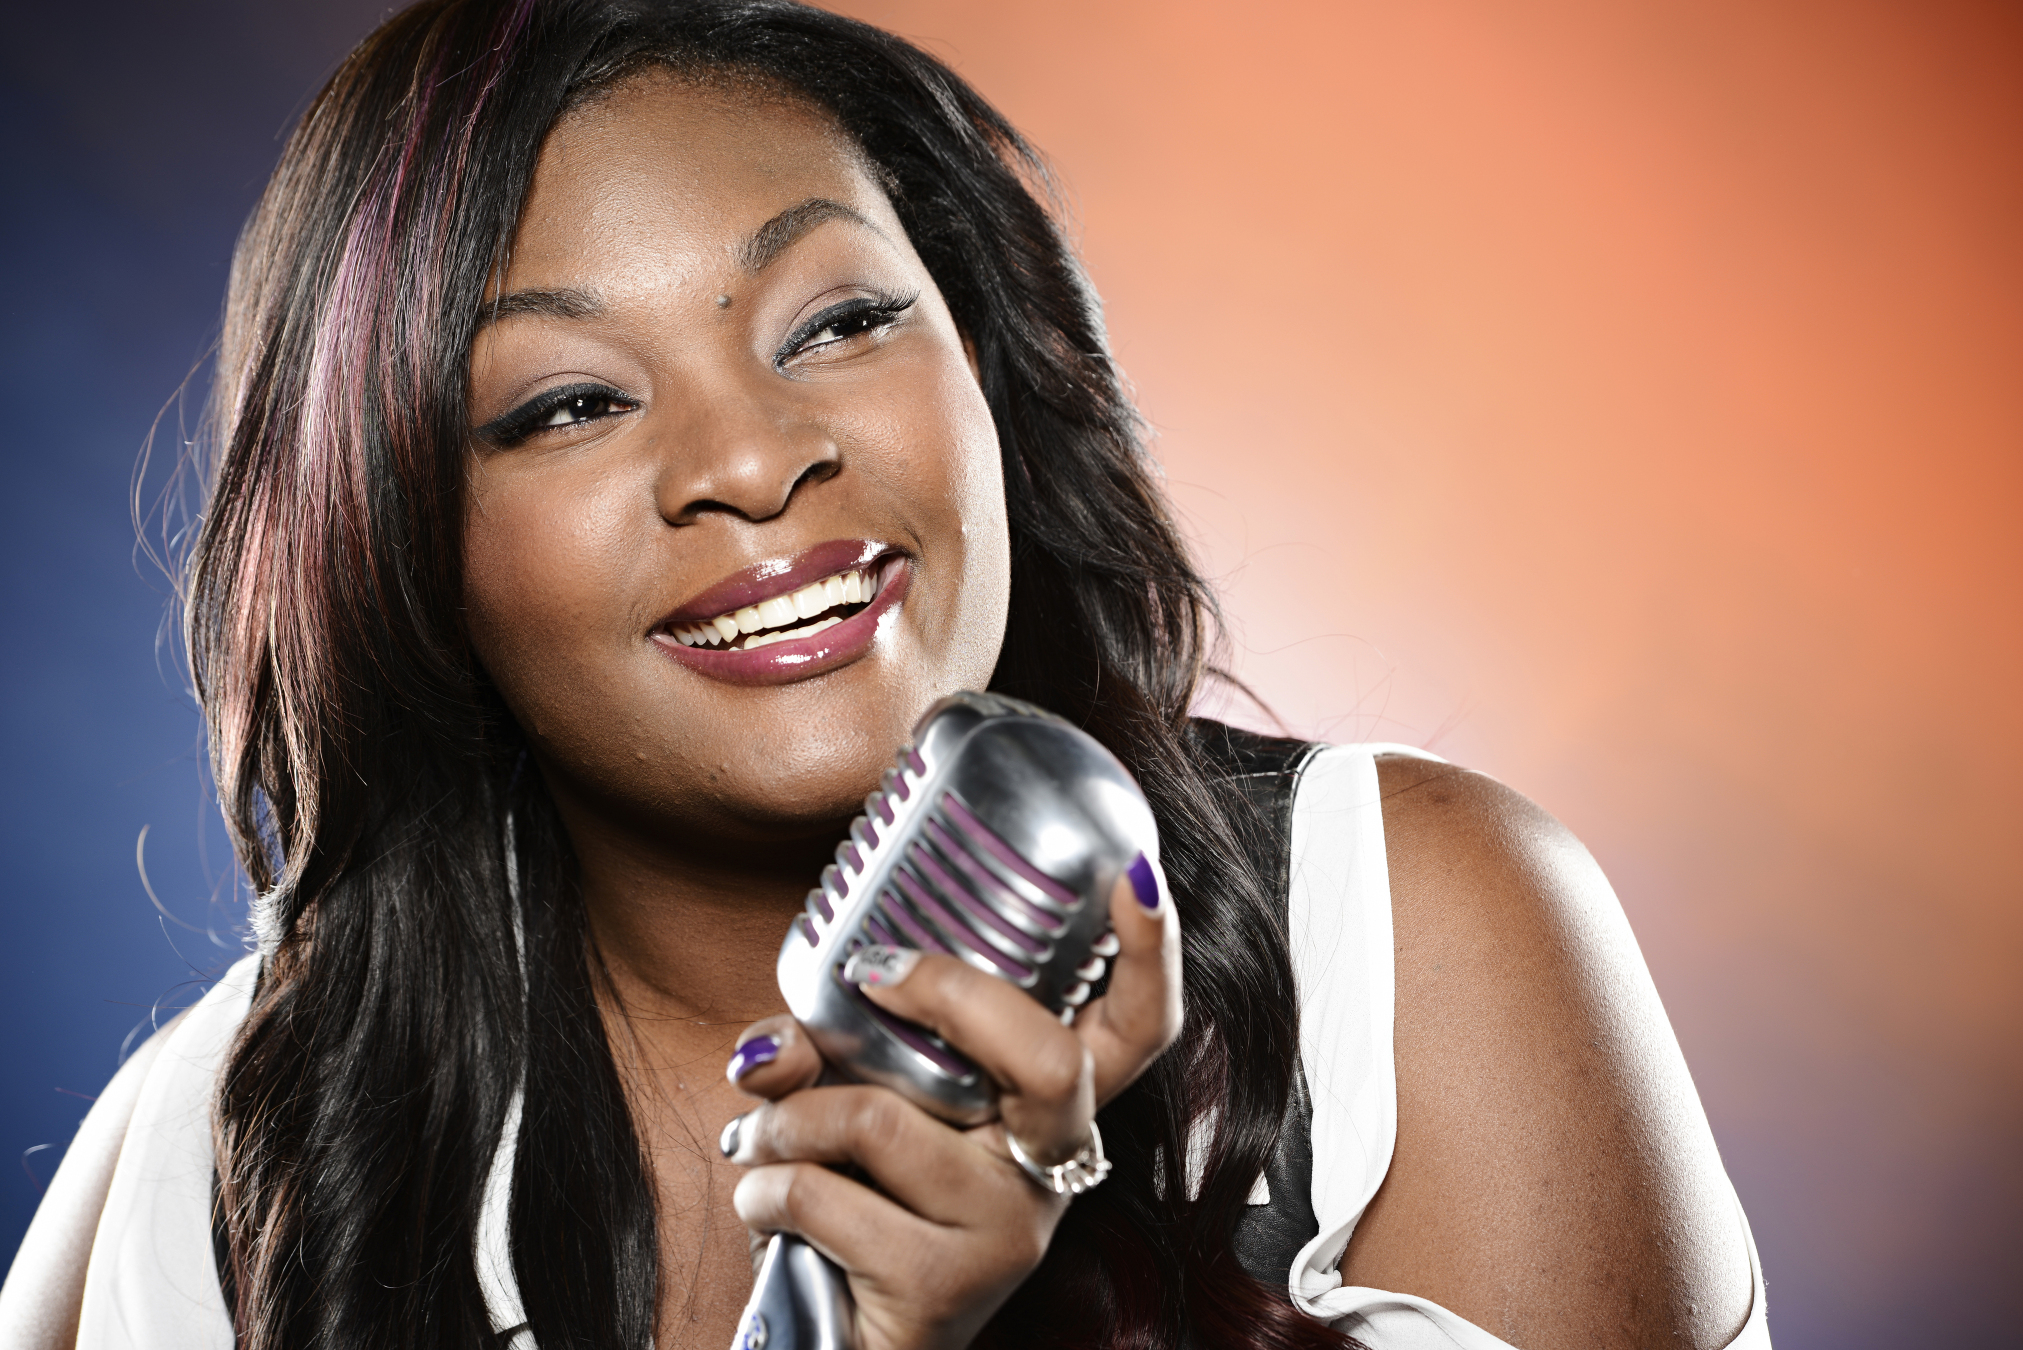 AMERICAN IDOL: Candice Glover. CR: Michael Becker